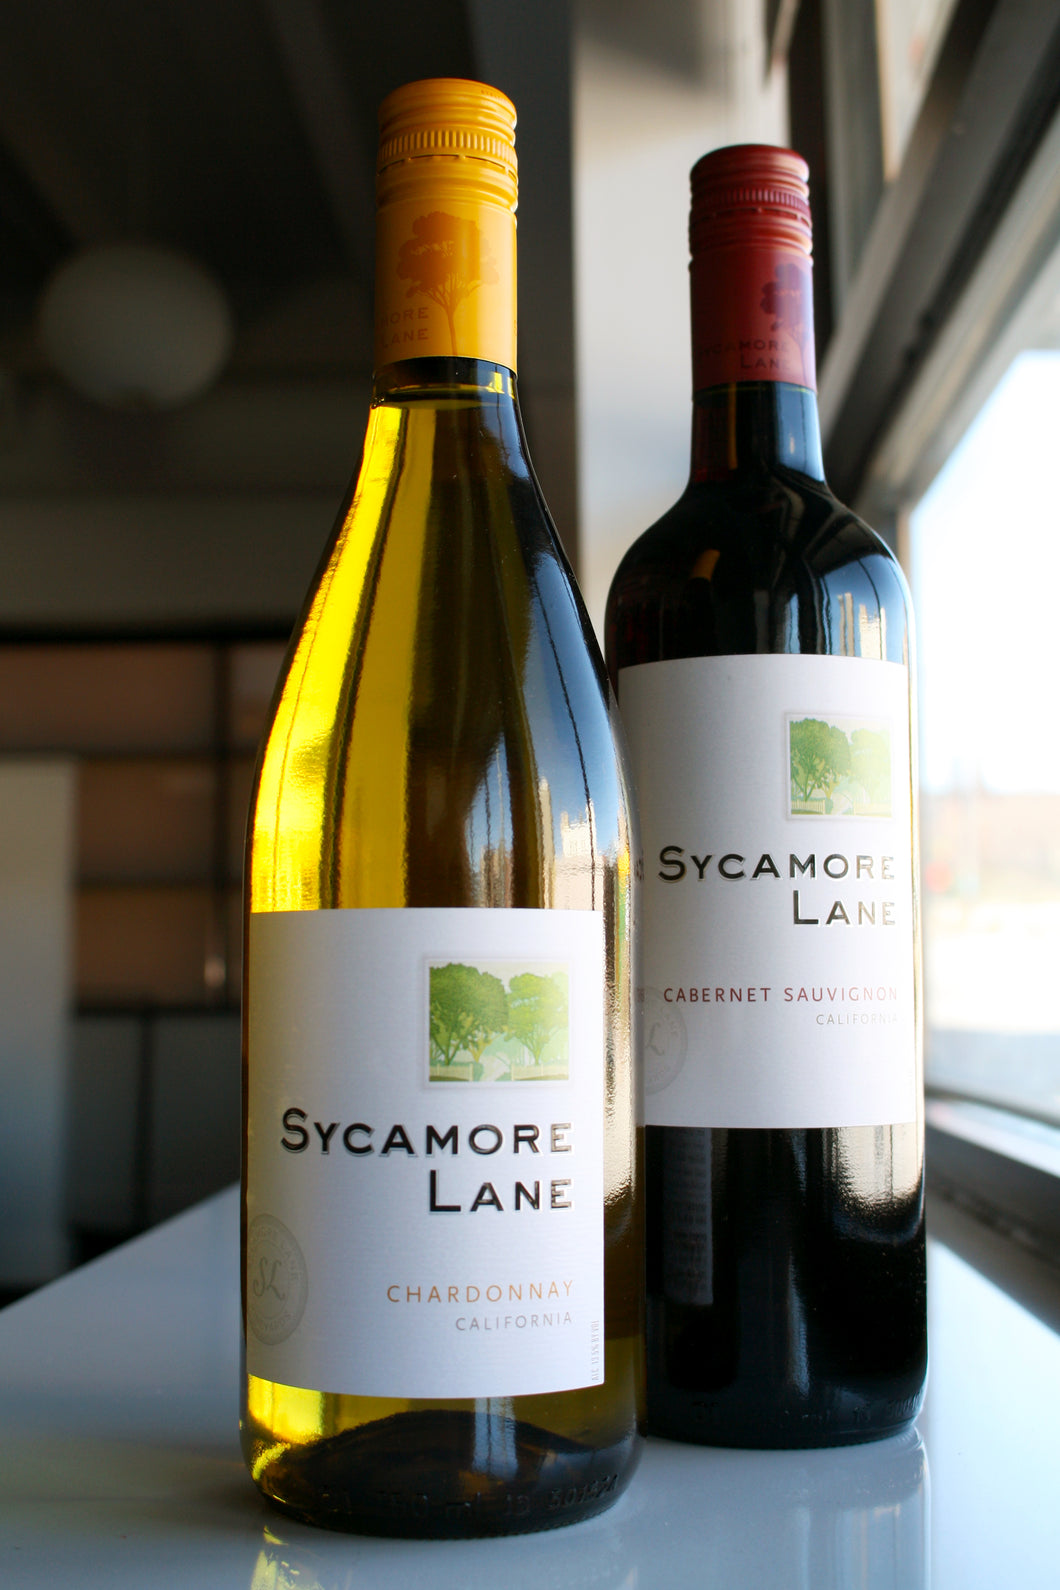 2 Bottles of Sycamore Lane Wine - SAME DAY DELIVERY